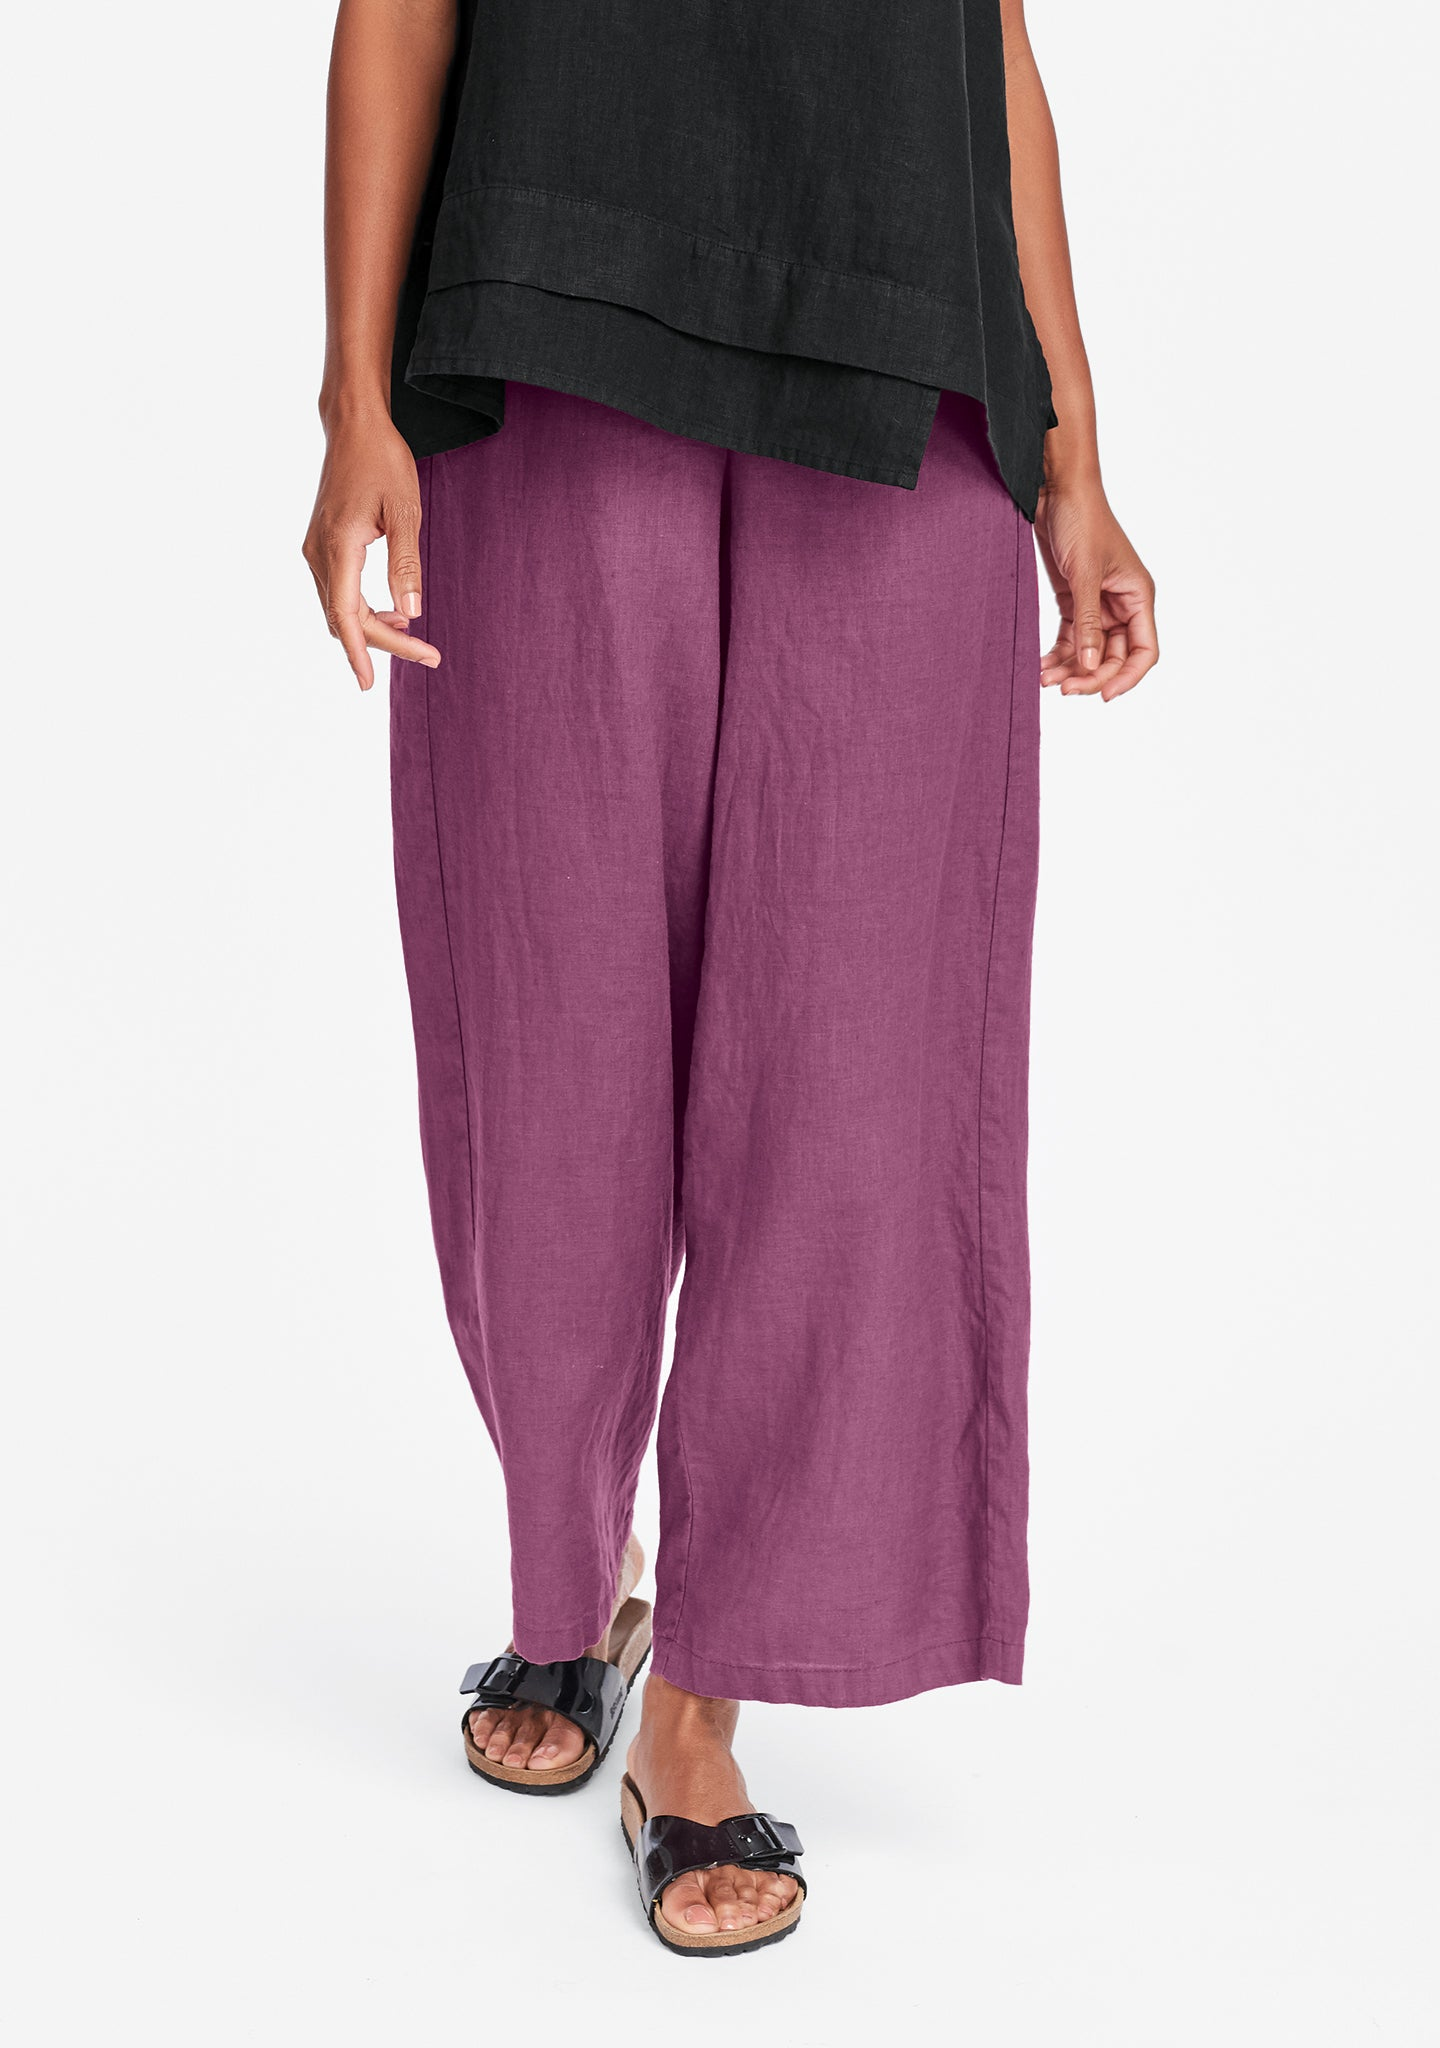 tigerlily pant wide leg linen pants purple